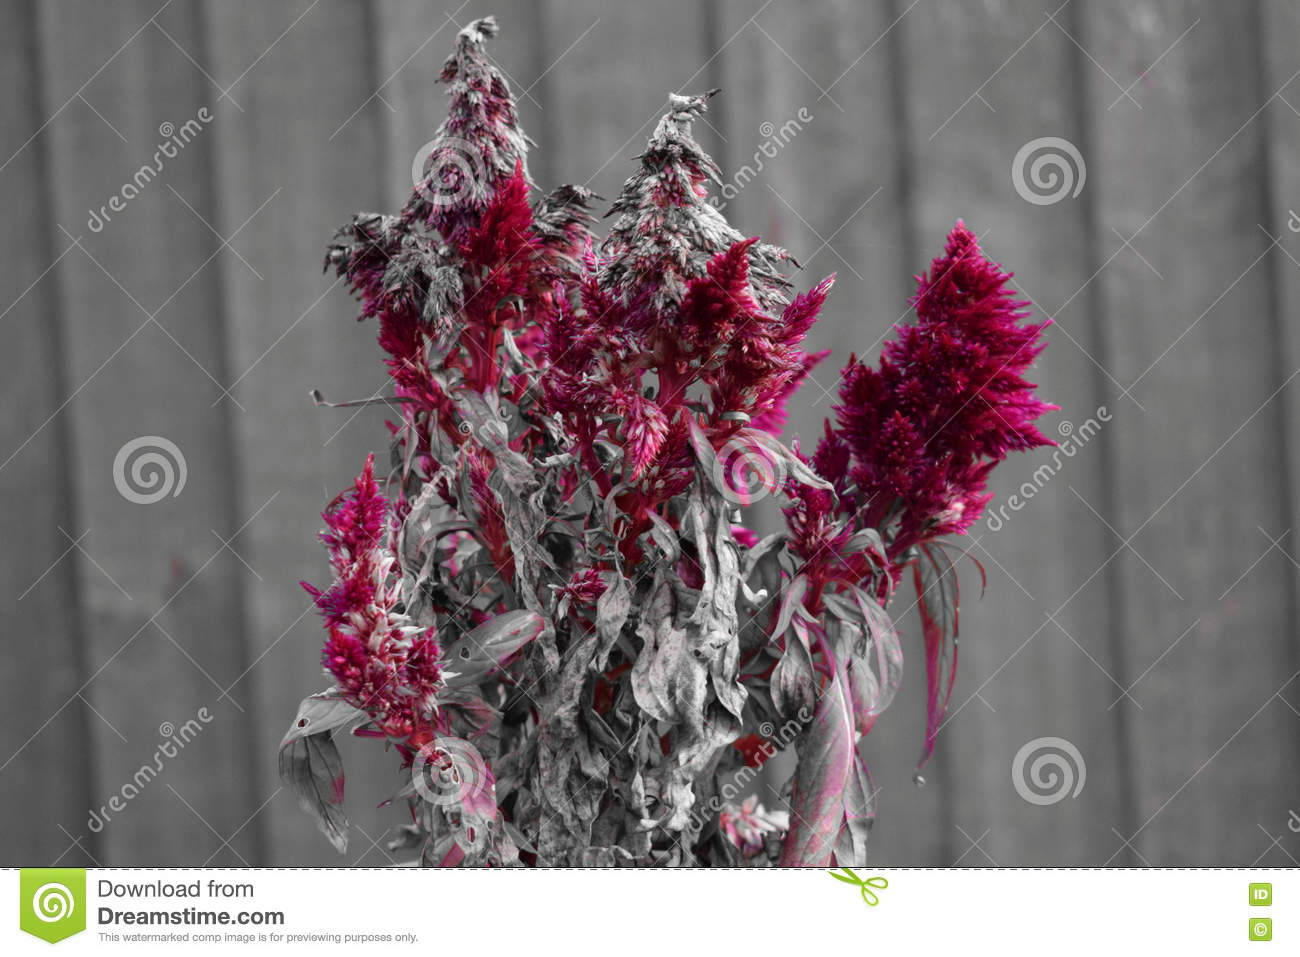 Red drying flower with wooden fence in background